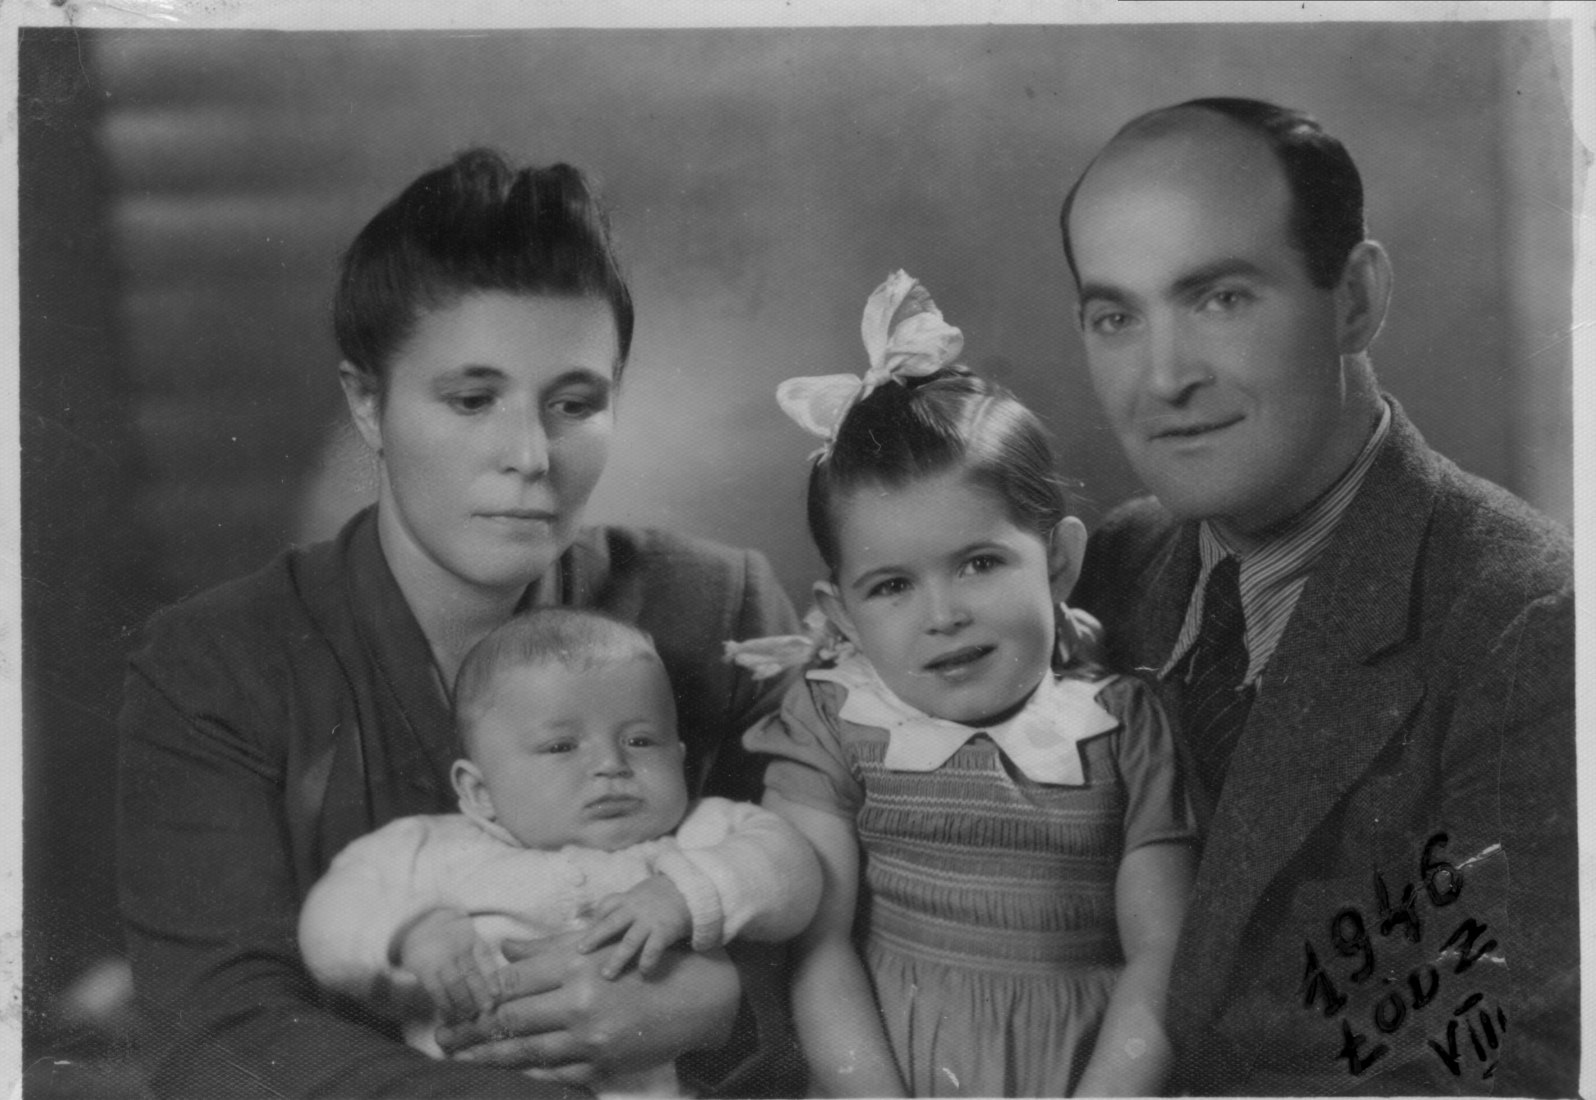 Daniel with sister Annette and Parents Dora and Nachman, 1946, Lodz. Image courtesy of Barcelona Roca Gallery.